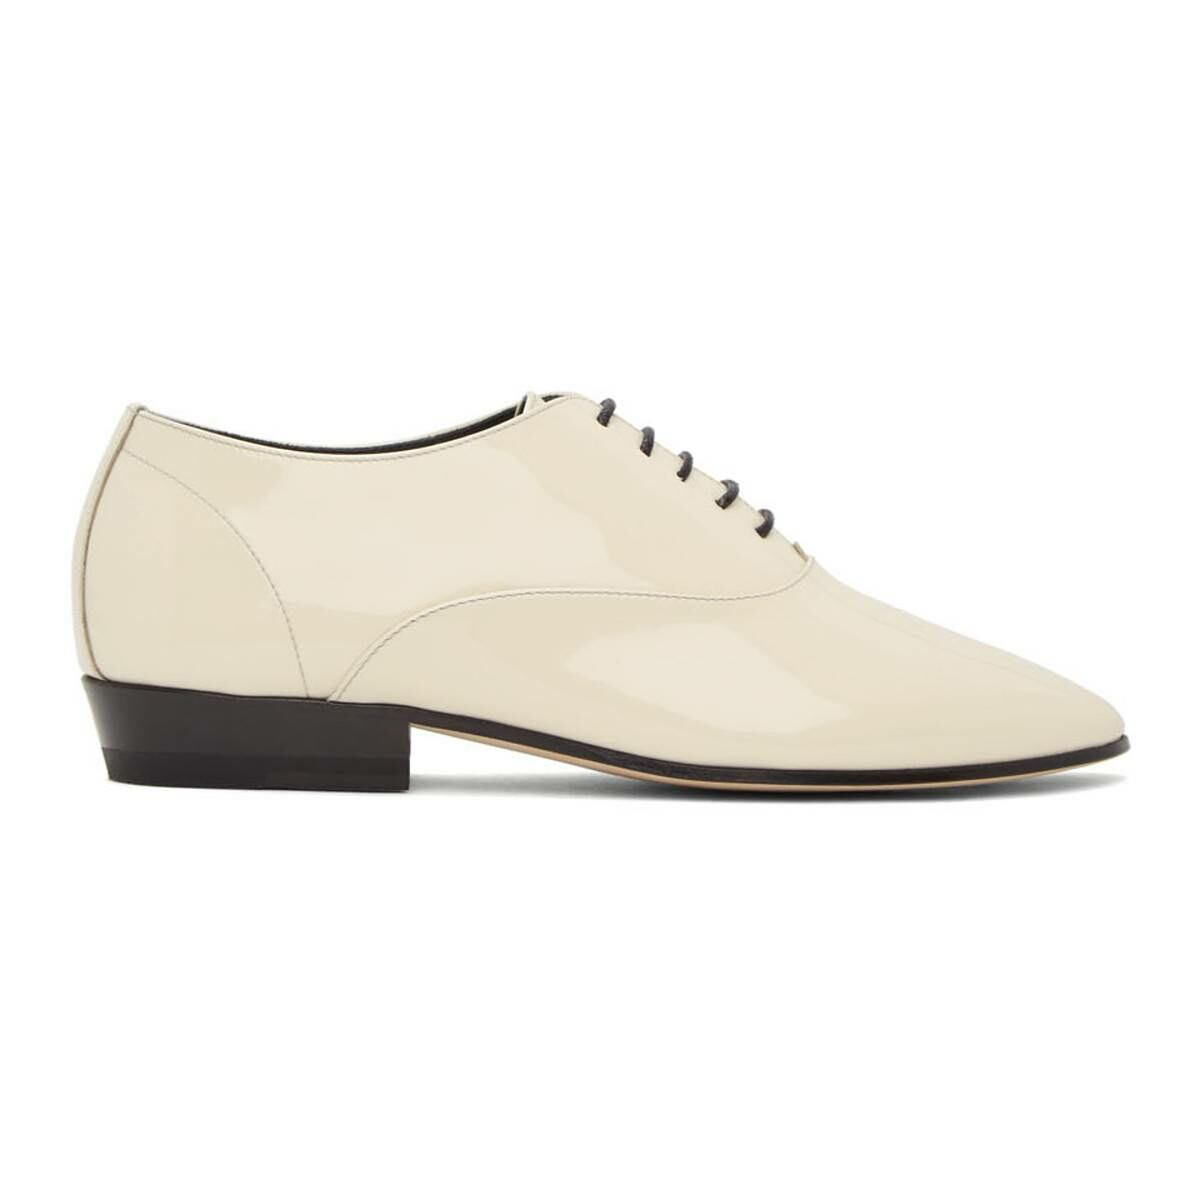 Saint Laurent Off-White Patent Marius Oxfords Ssense USA WOMEN Women SHOES Womens LEATHER SHOES